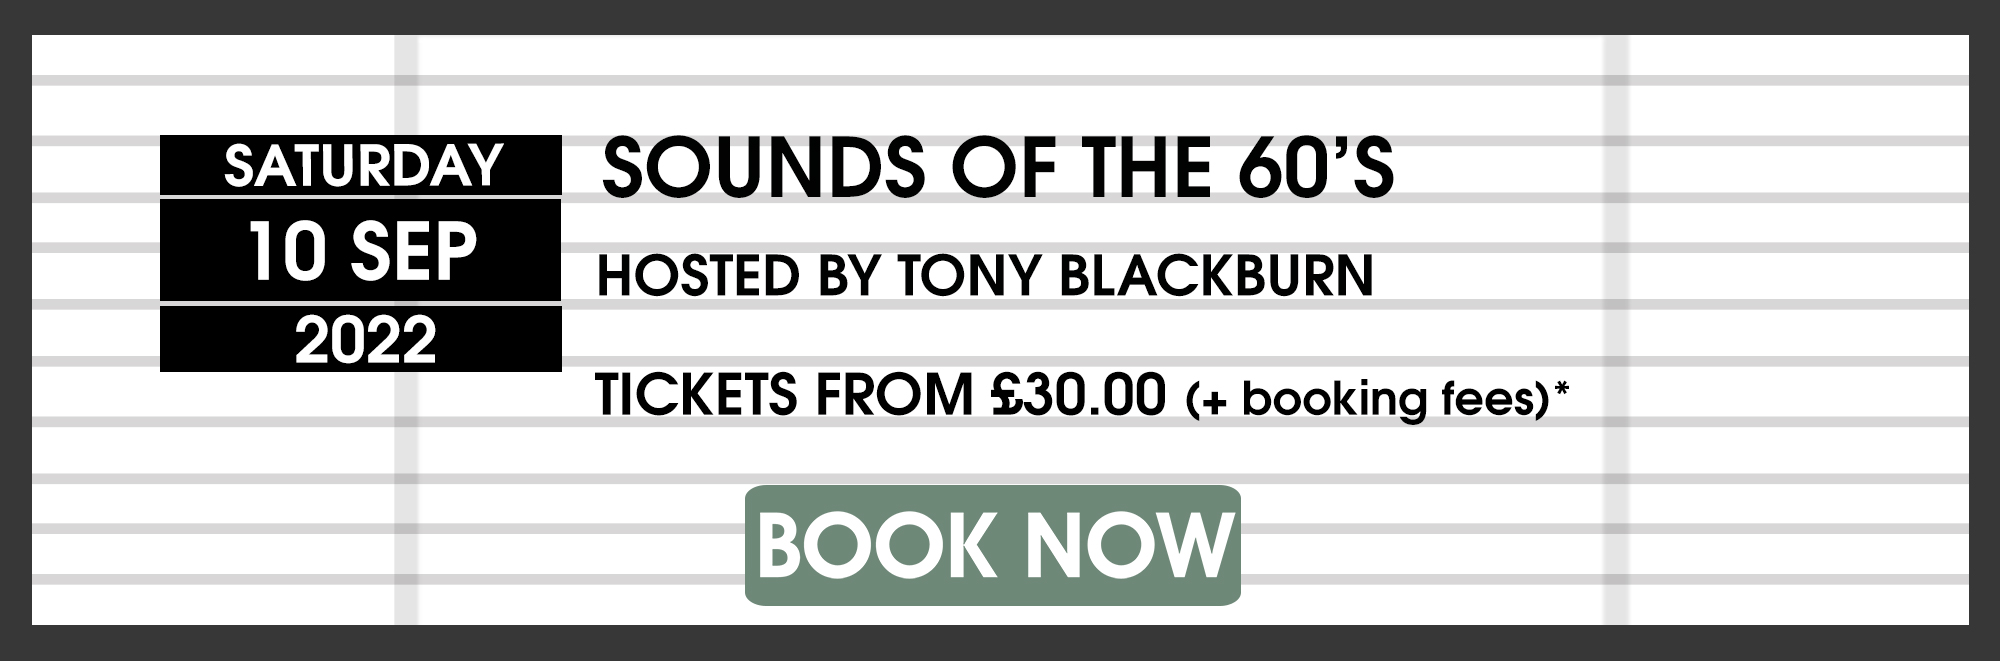 10.09.22 Sounds of Tony Blackb